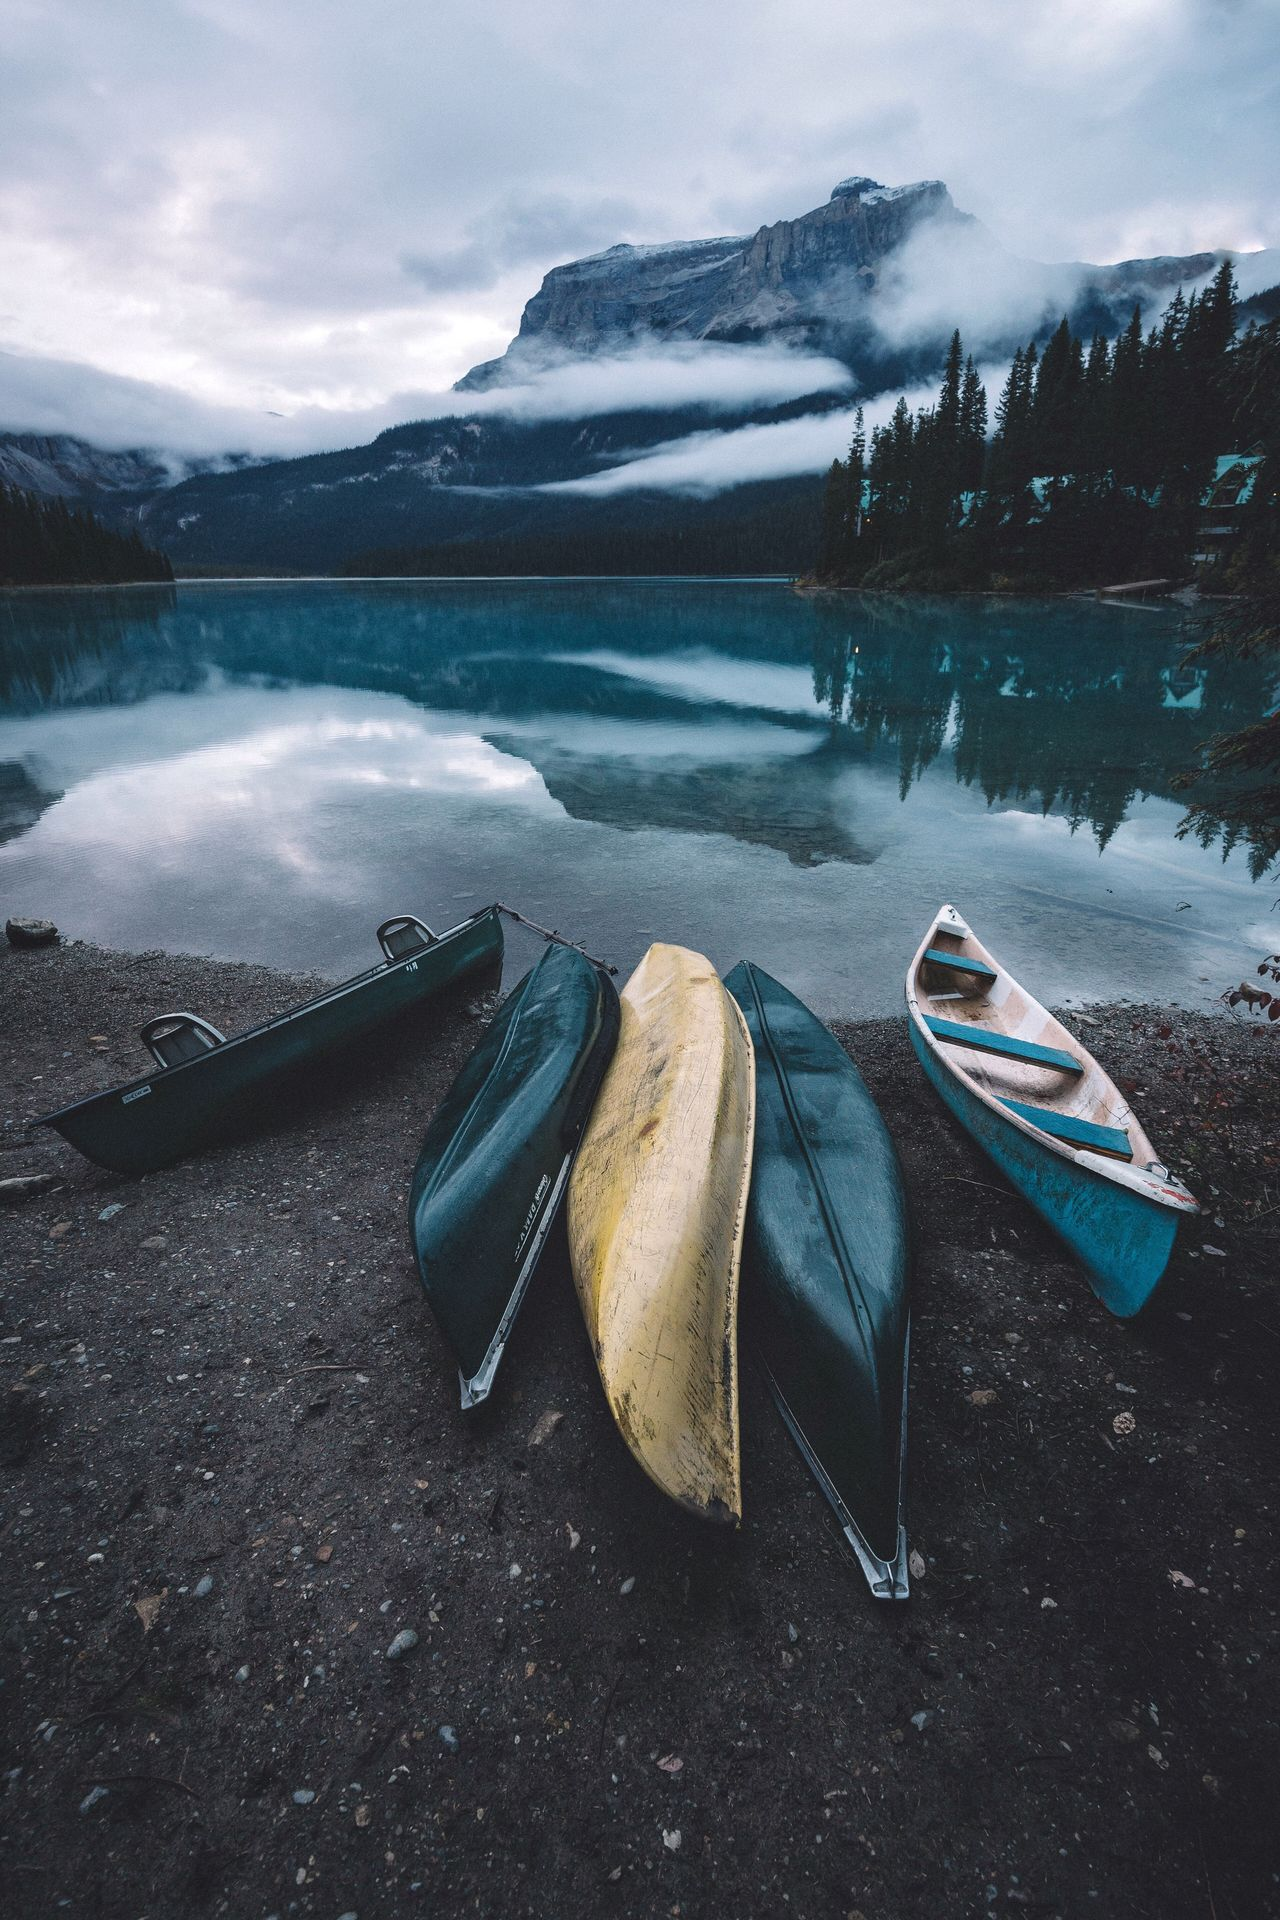 Canoeing Canada Sunrise Vscofilm Lake No People Mountain Outdoors Tranquility Nature Scenics Water Sky Nautical Vessel Beauty In Nature Day